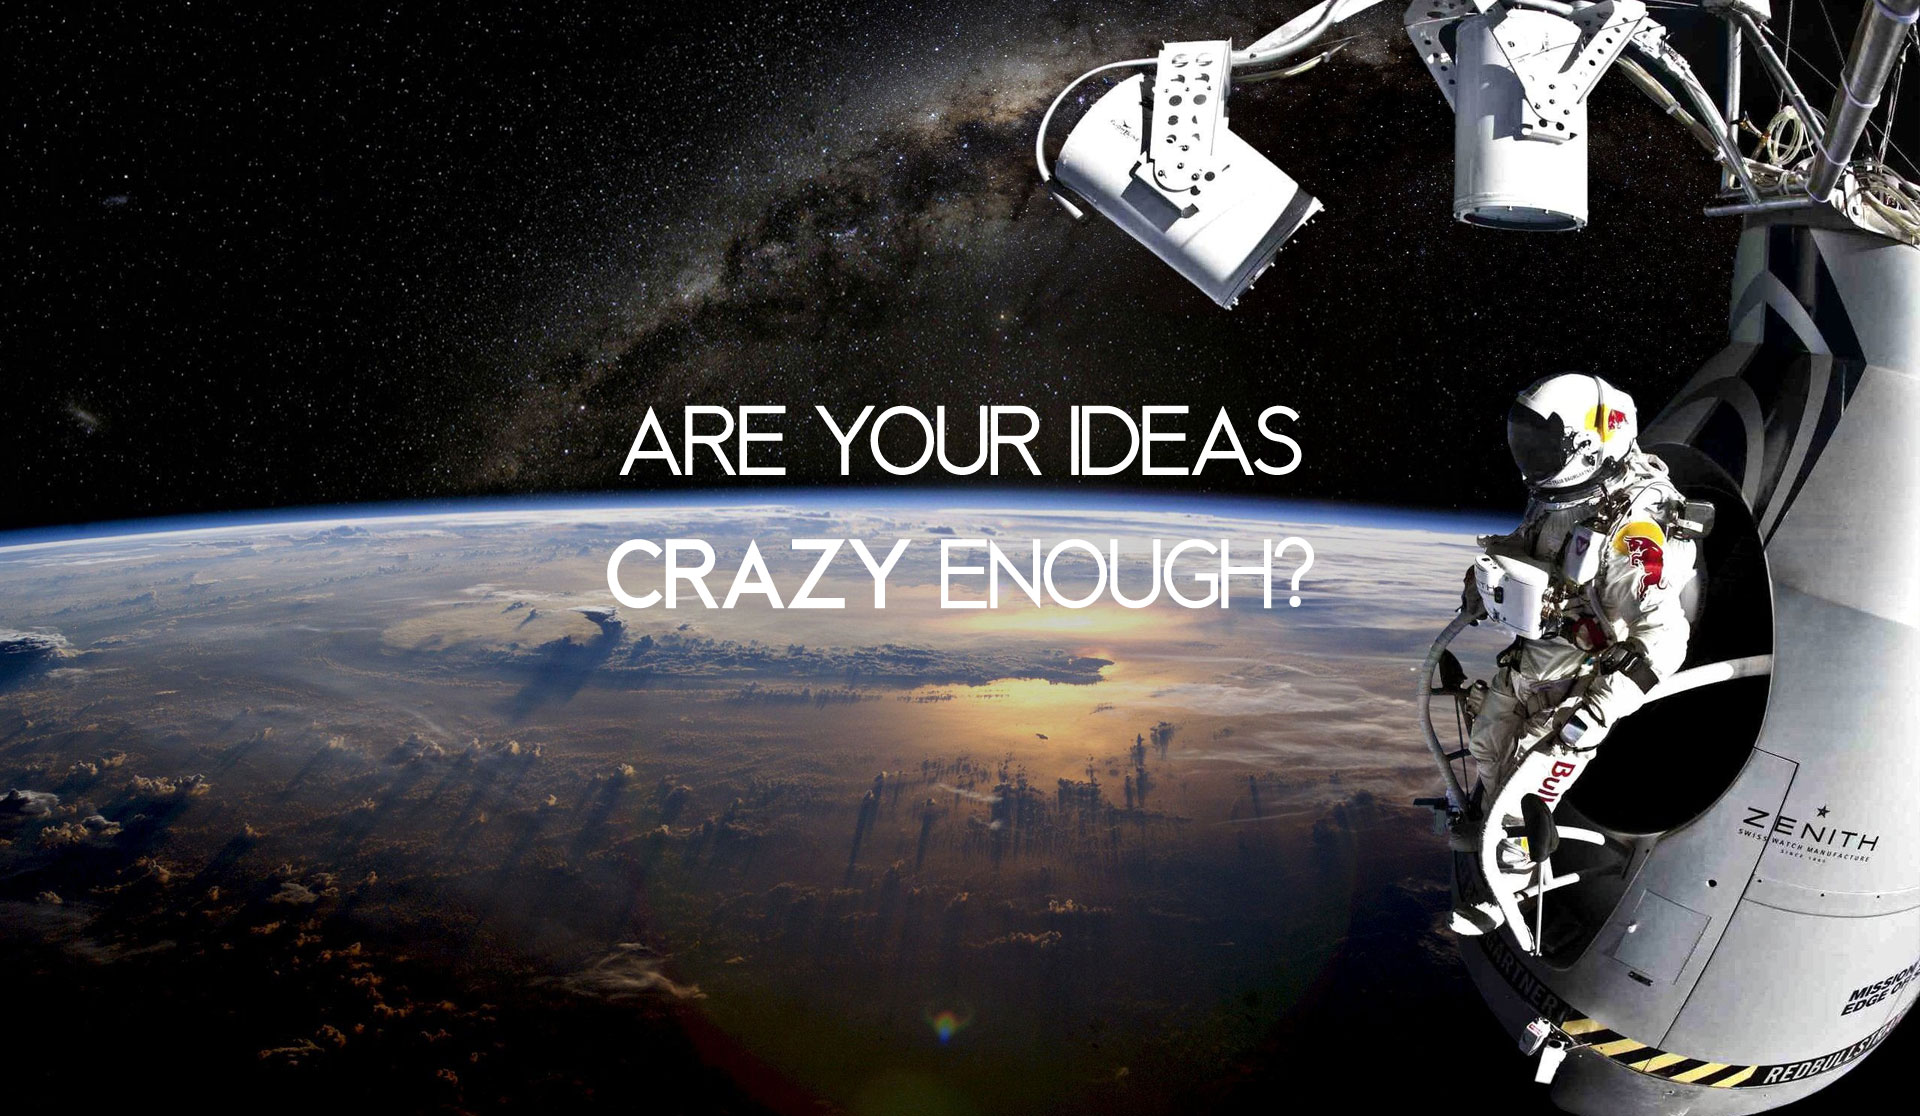 Are your ideas crazy enough?